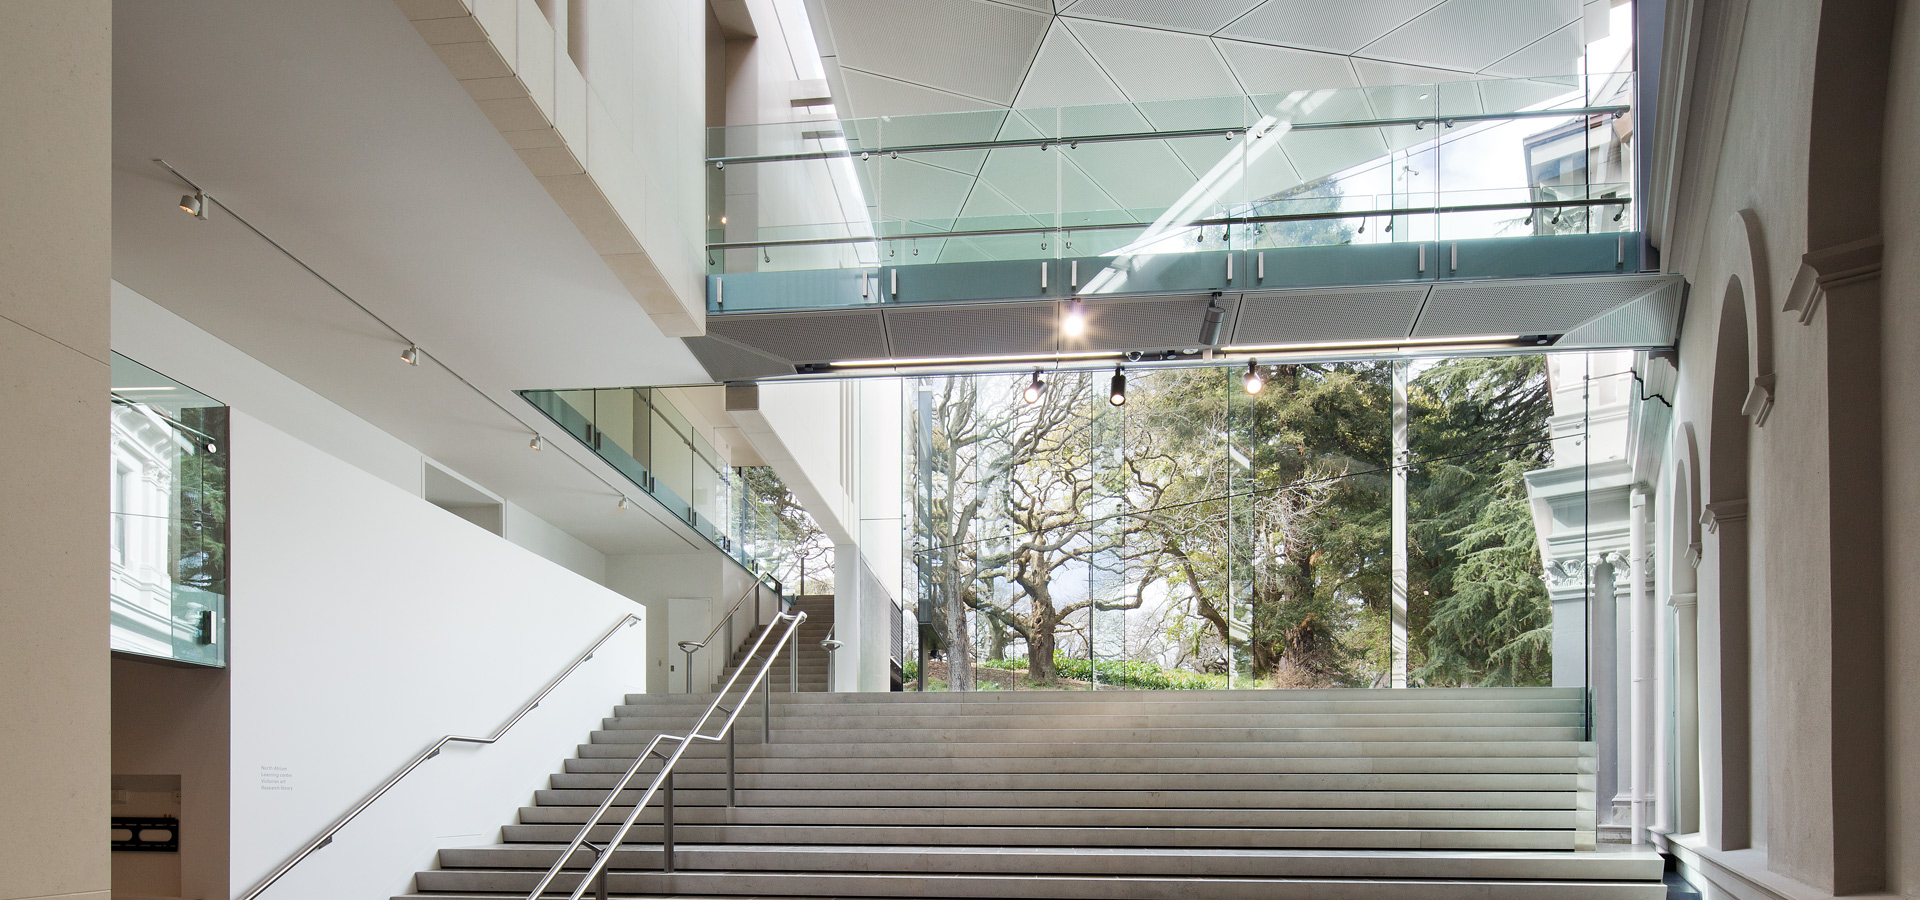 The Auckland Art Gallery Toi o Tāmaki designed by fjmt